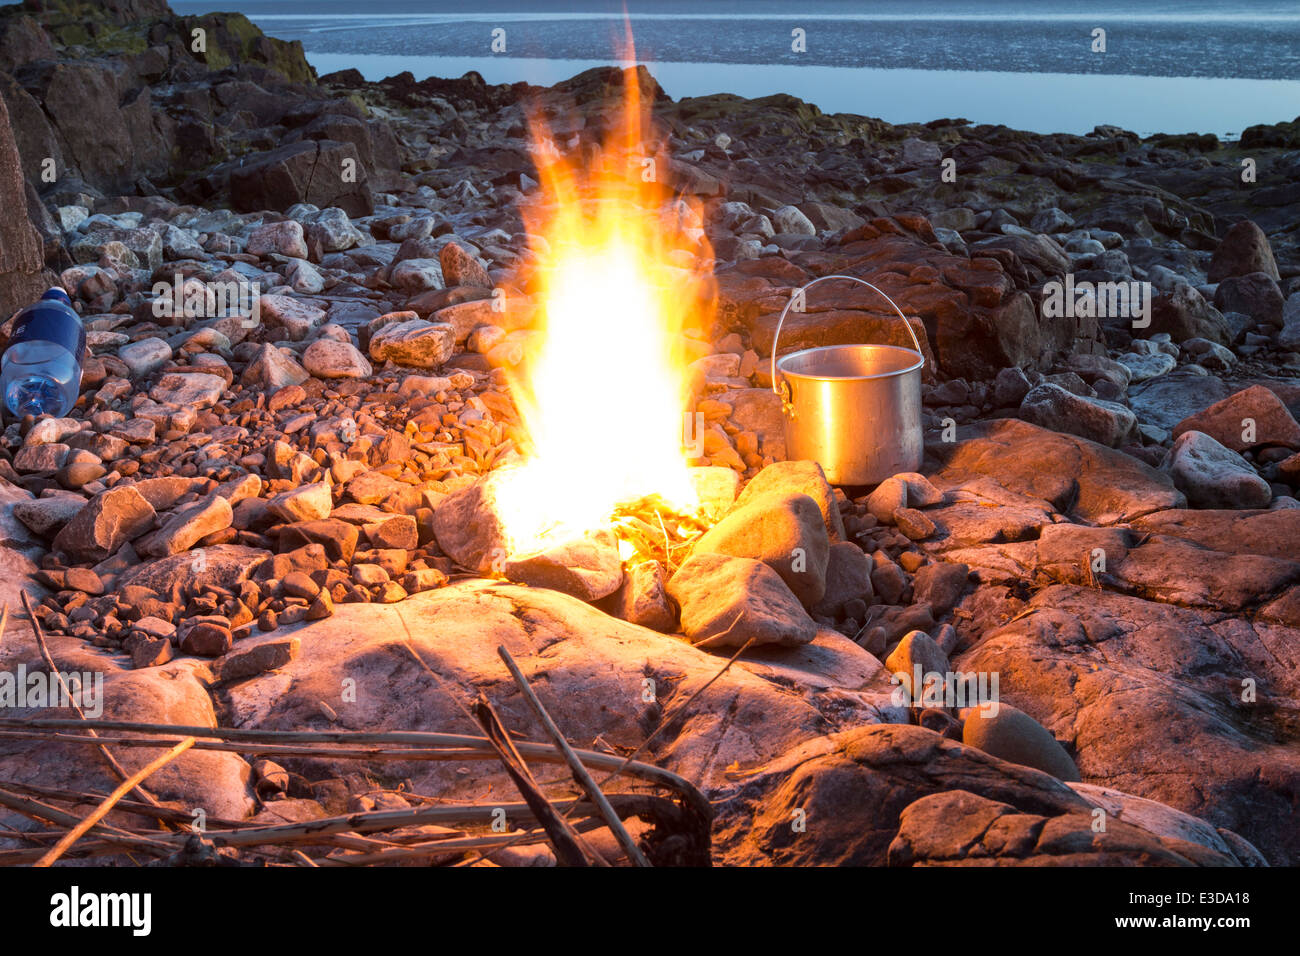 Camp Fire With Cooking Pot On A Rocky Beach At Dusk